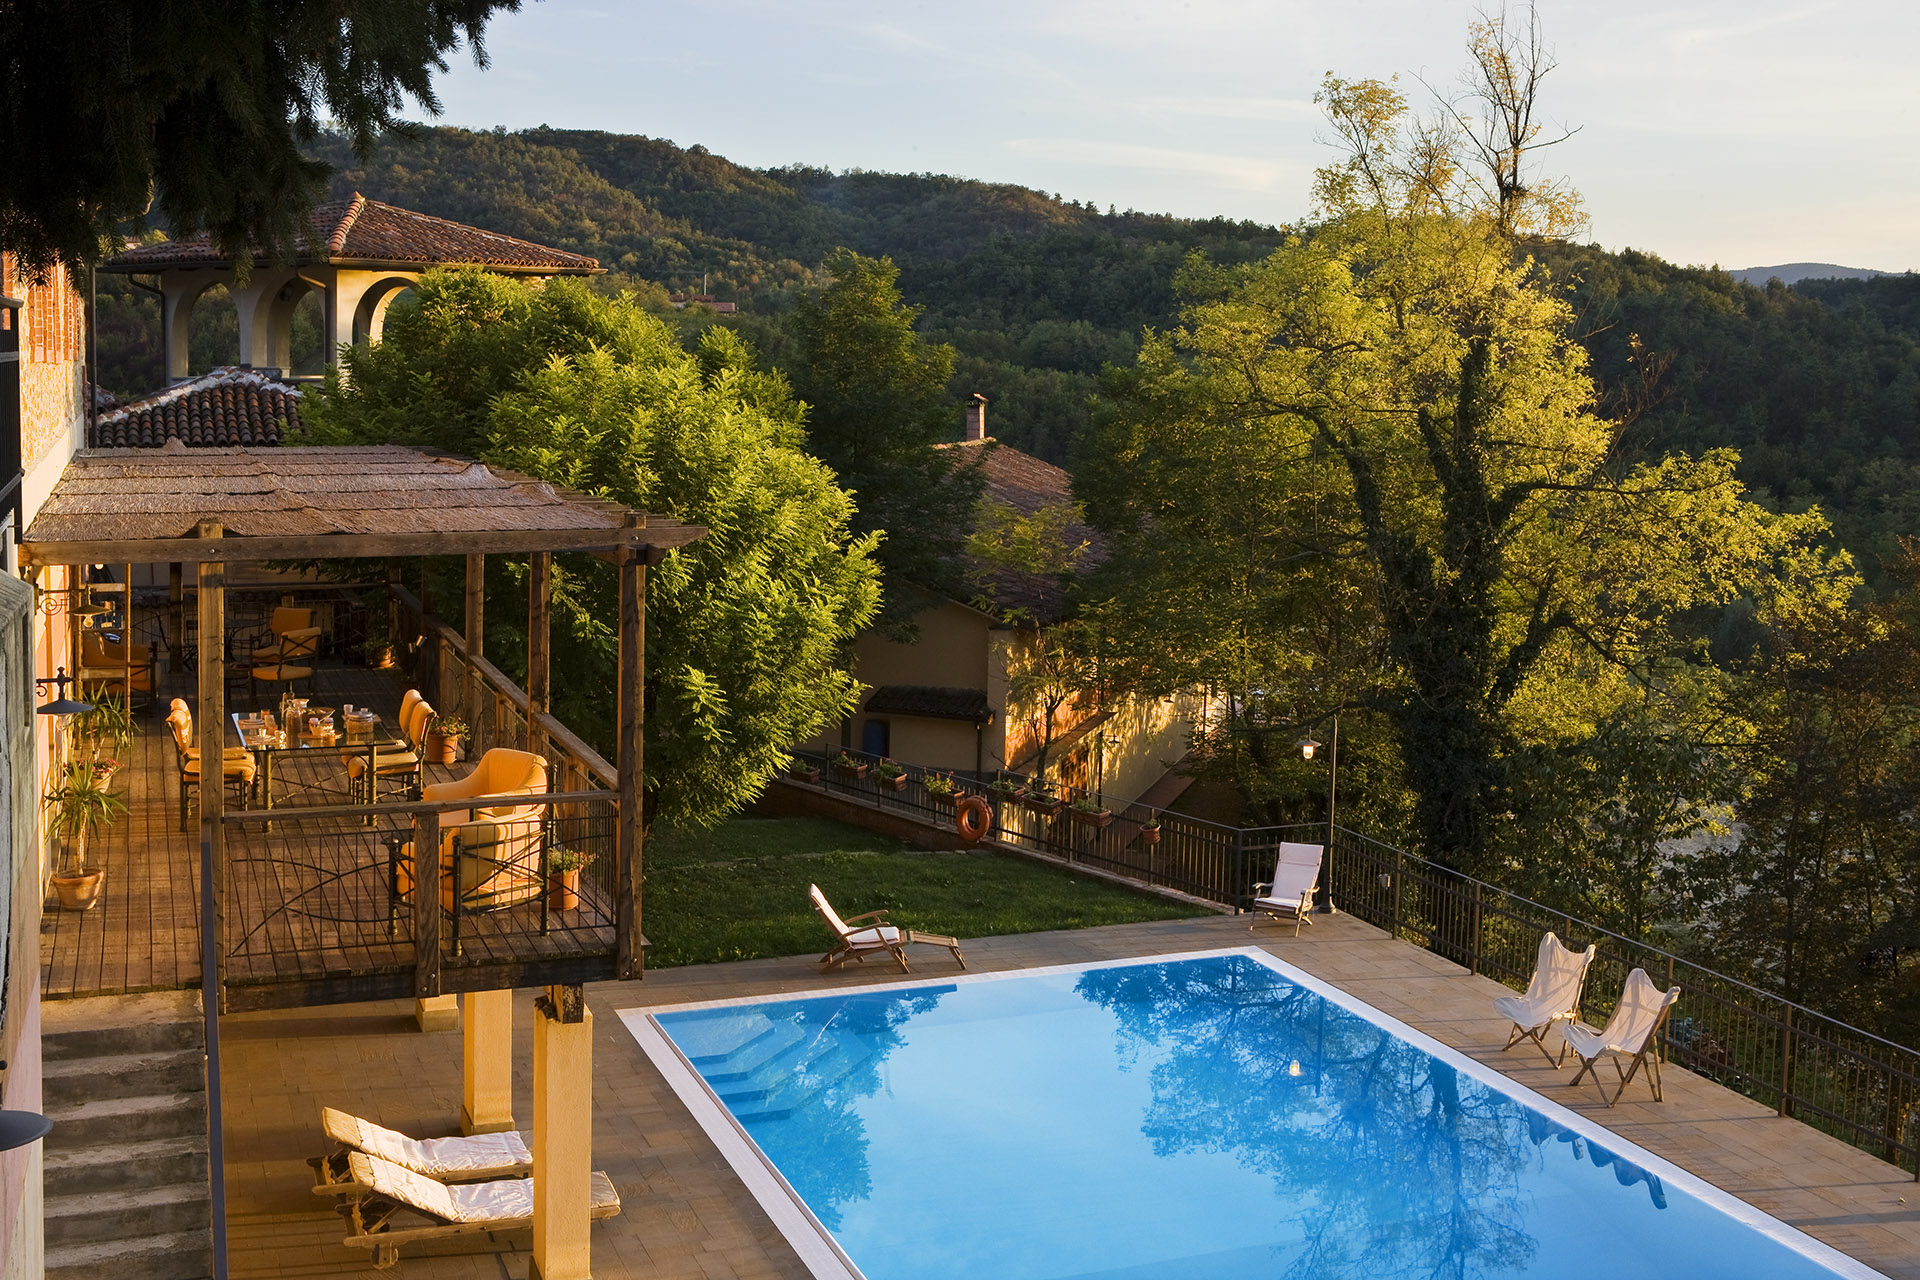 Bed & Breakfast in Piedmont, Italy